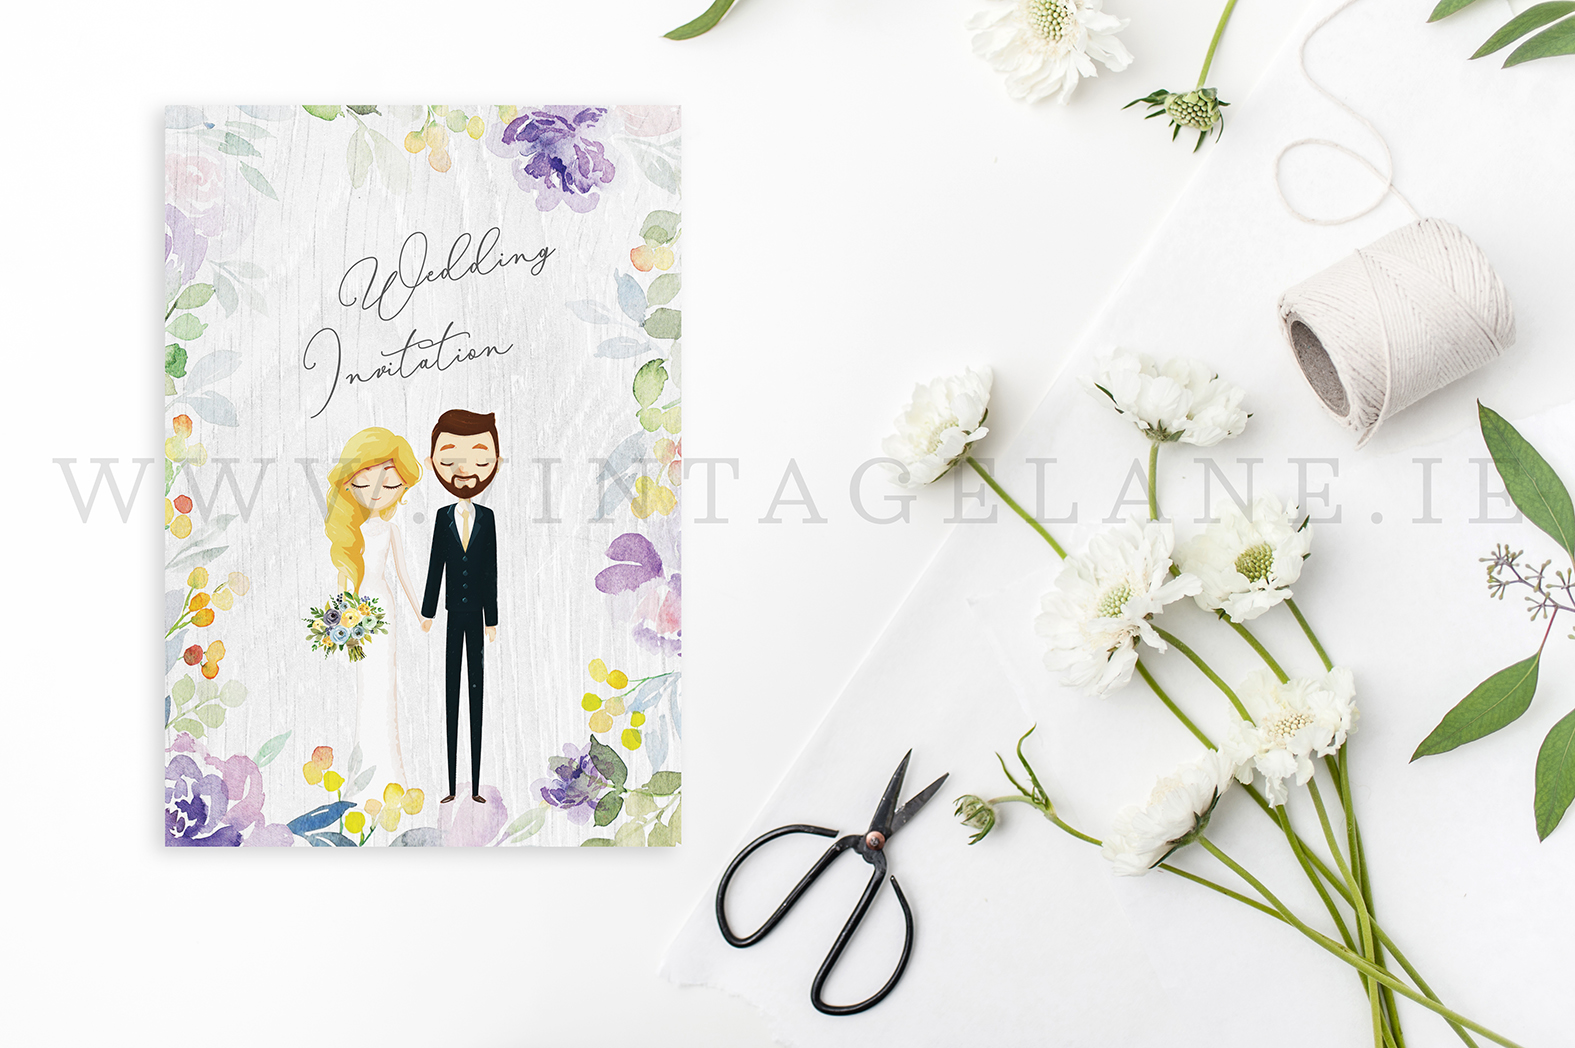 Personalised characters wedding invitations cartoon design wedding invitations character bride and groom invitations cork ireland